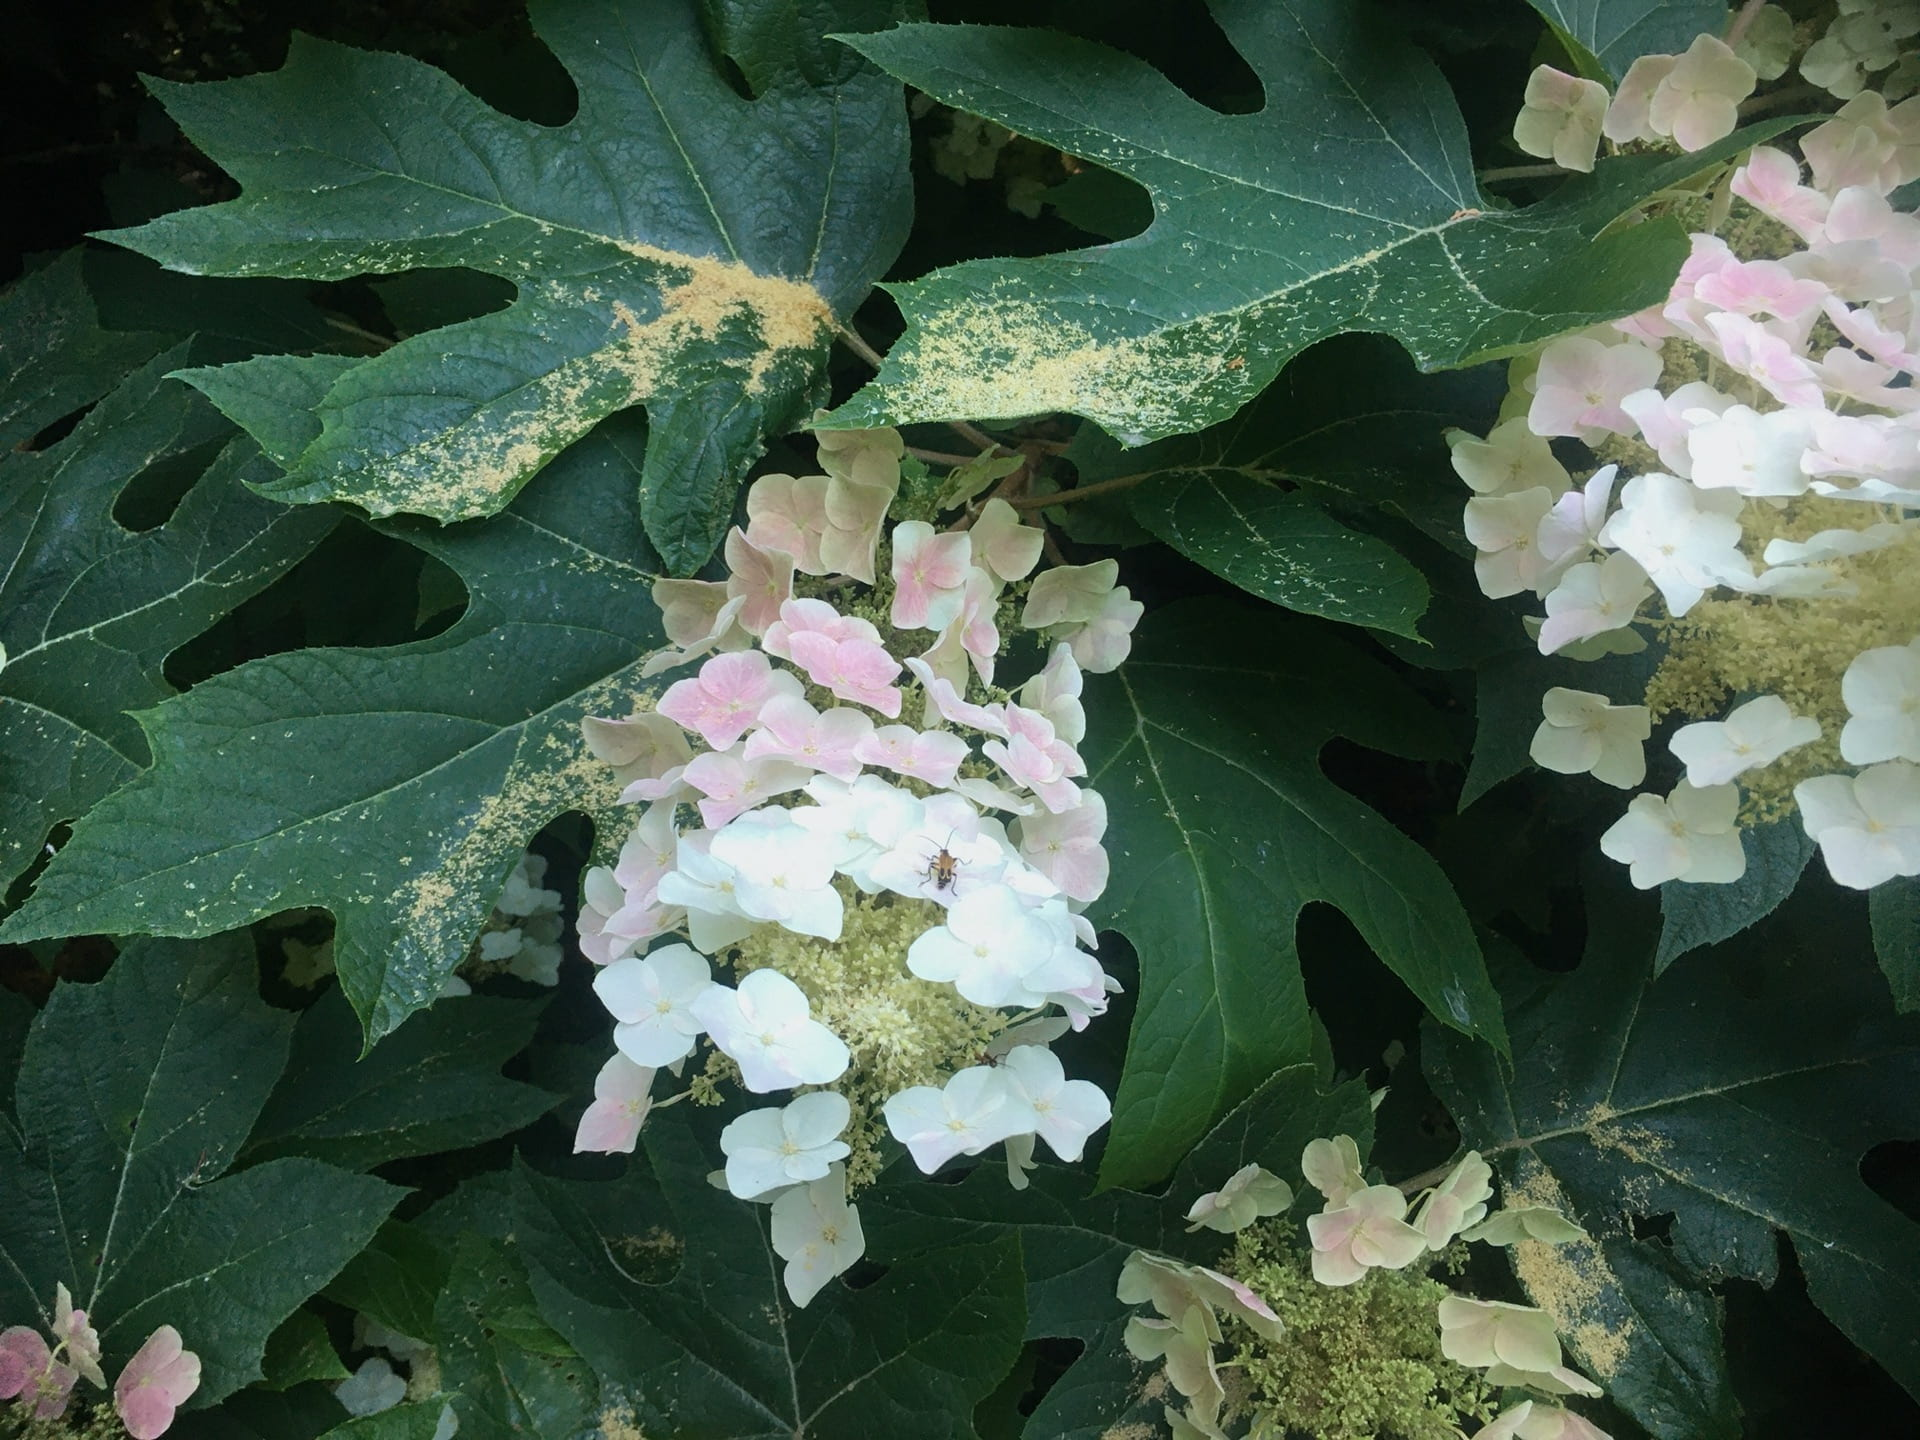 A display of Hydrangea quercifolia flowers in full bloom.